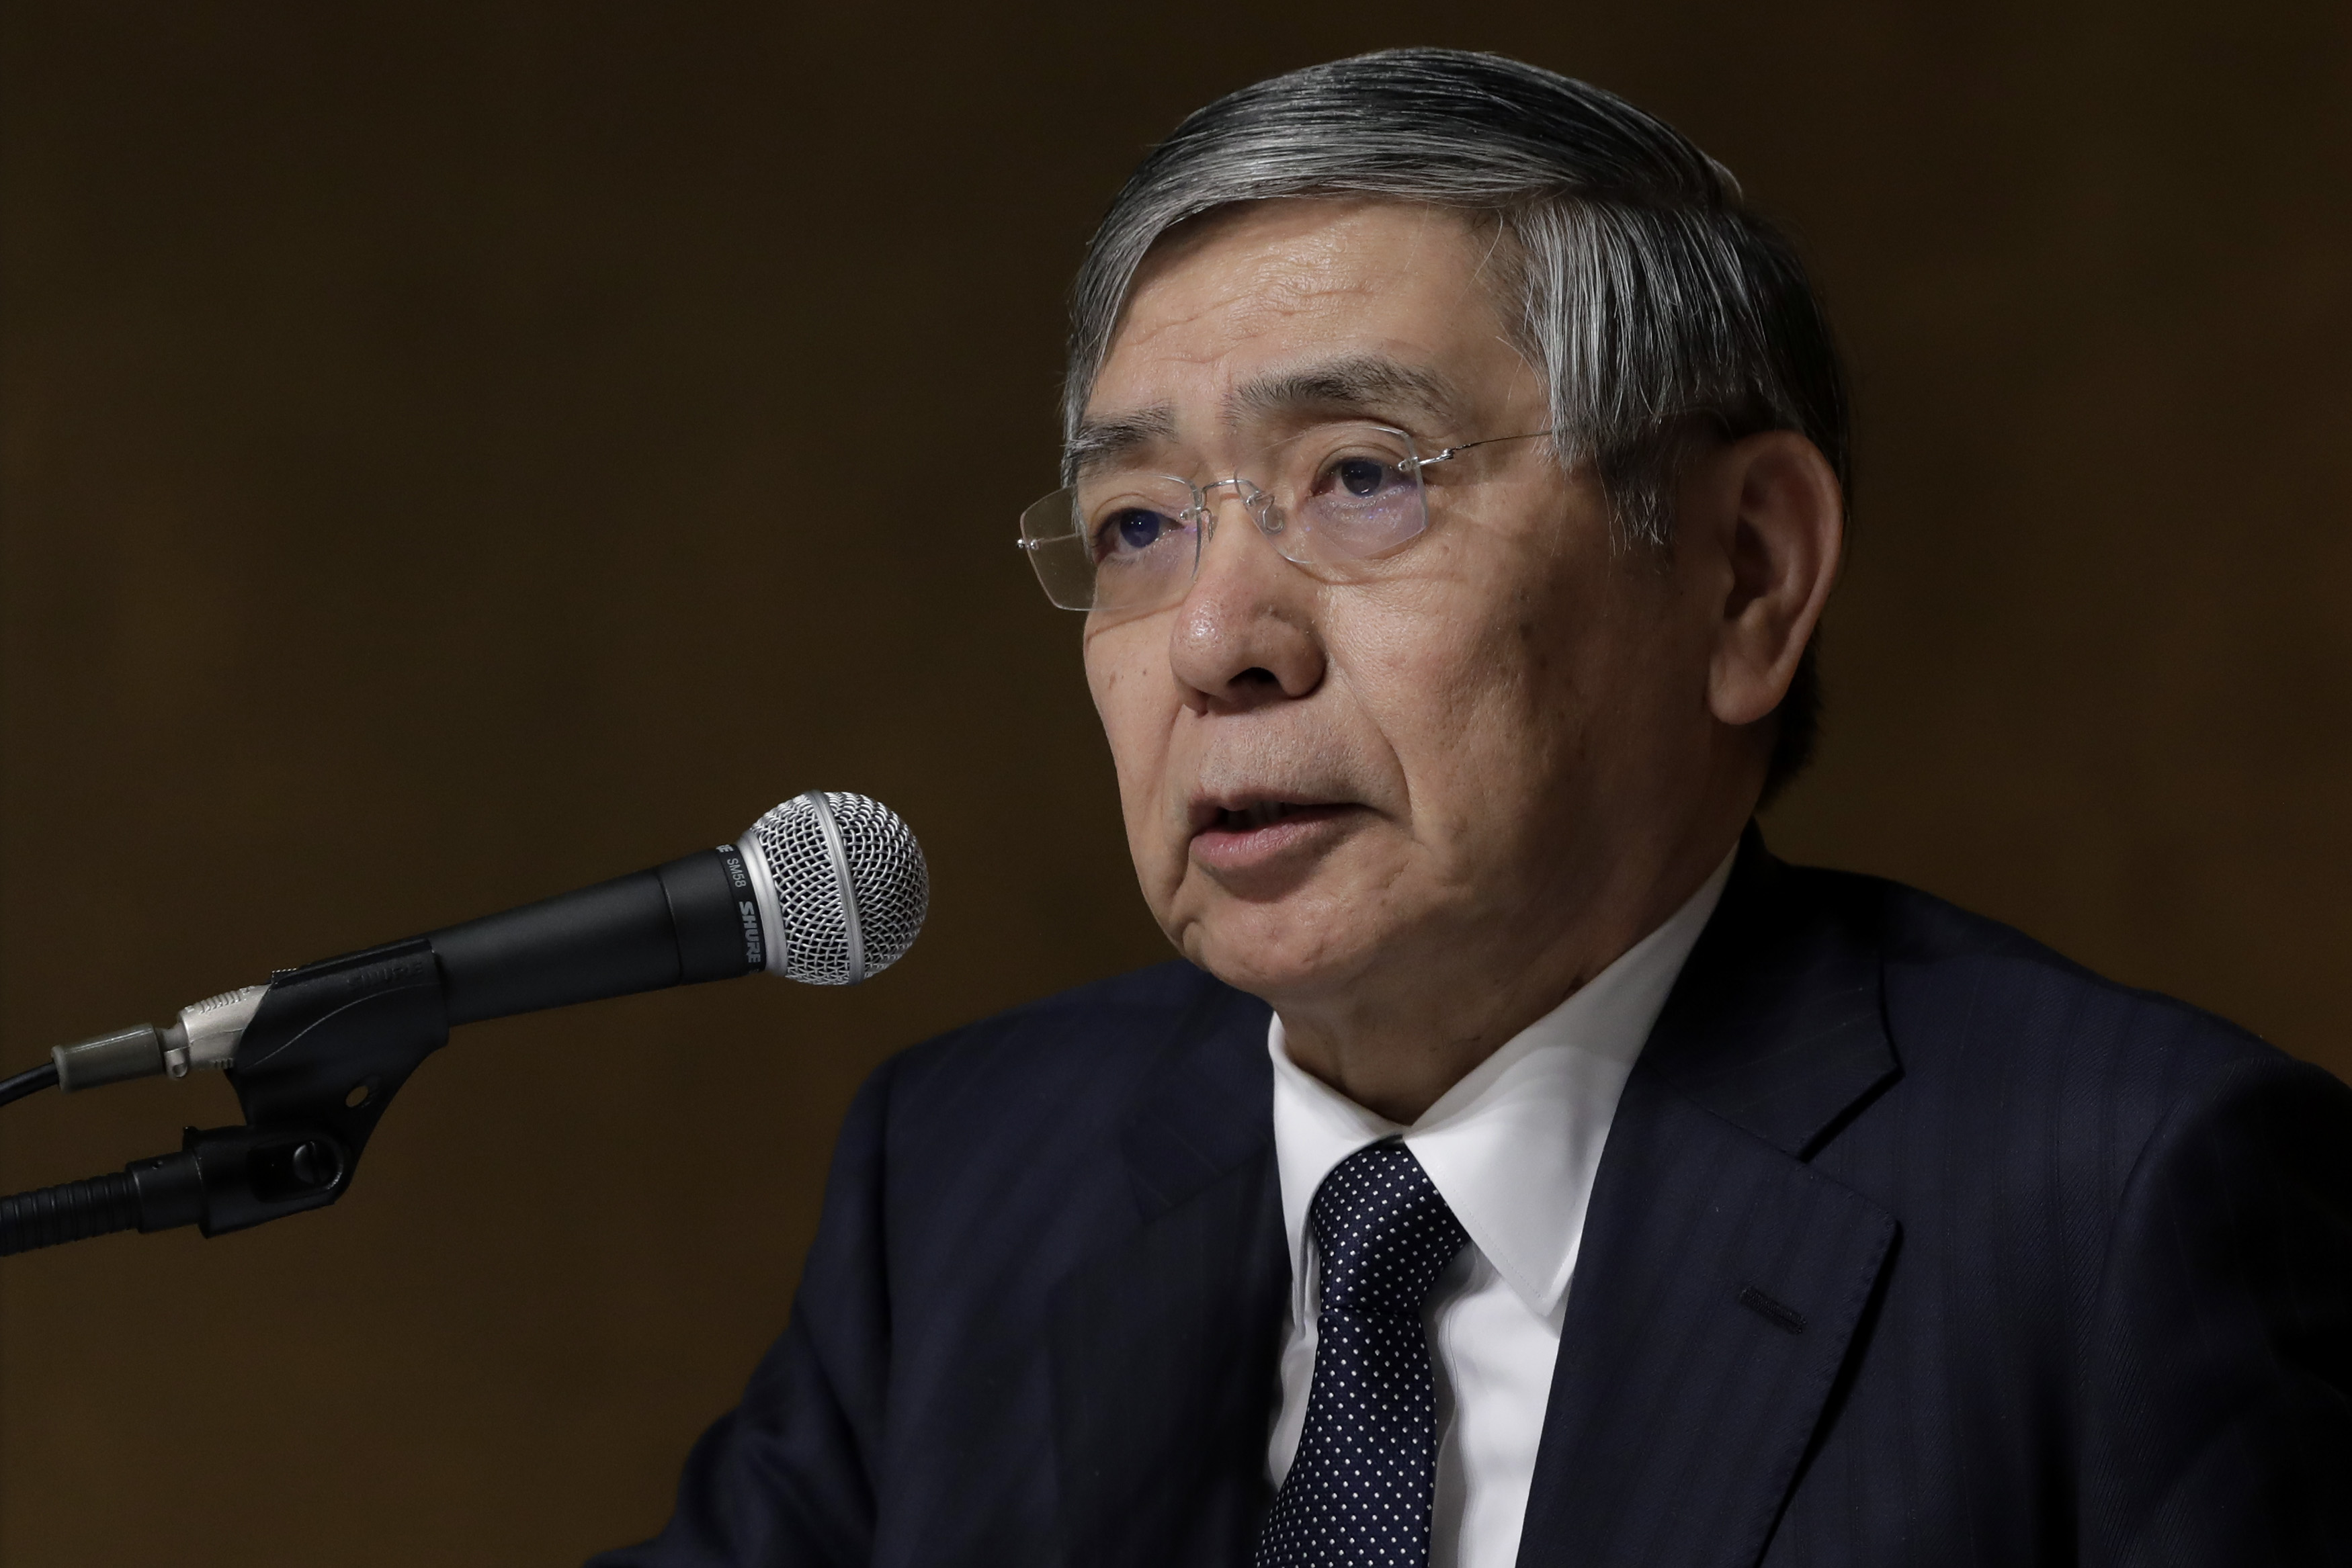 Bank Of Japan Governor Haruhiko Kuroda Speech and News Conference